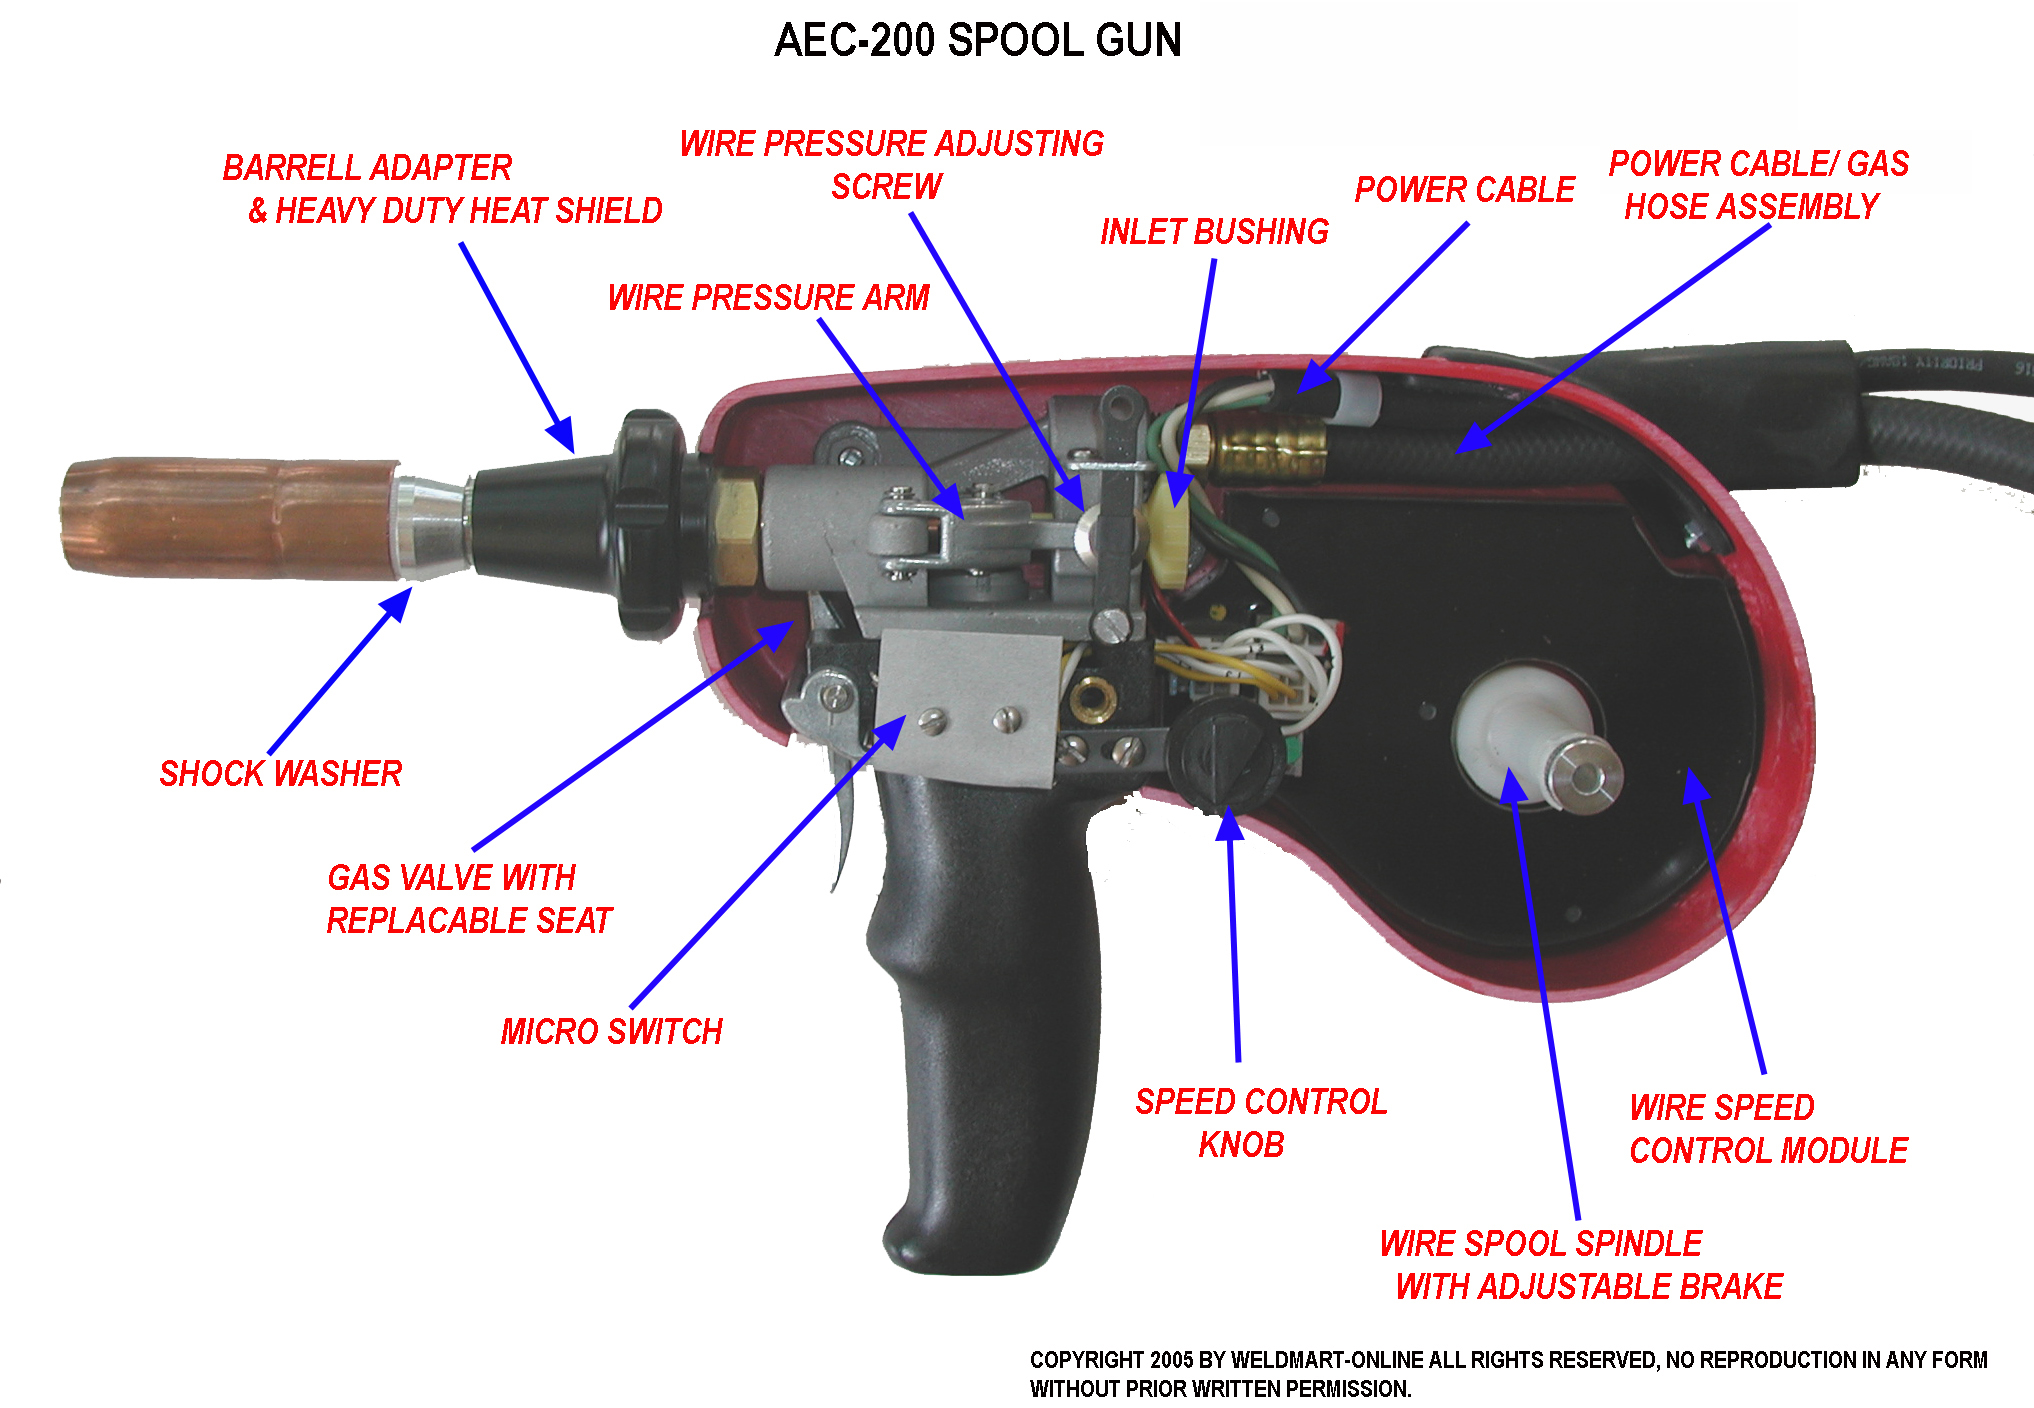 AEC Spool Gun Part Breakdown